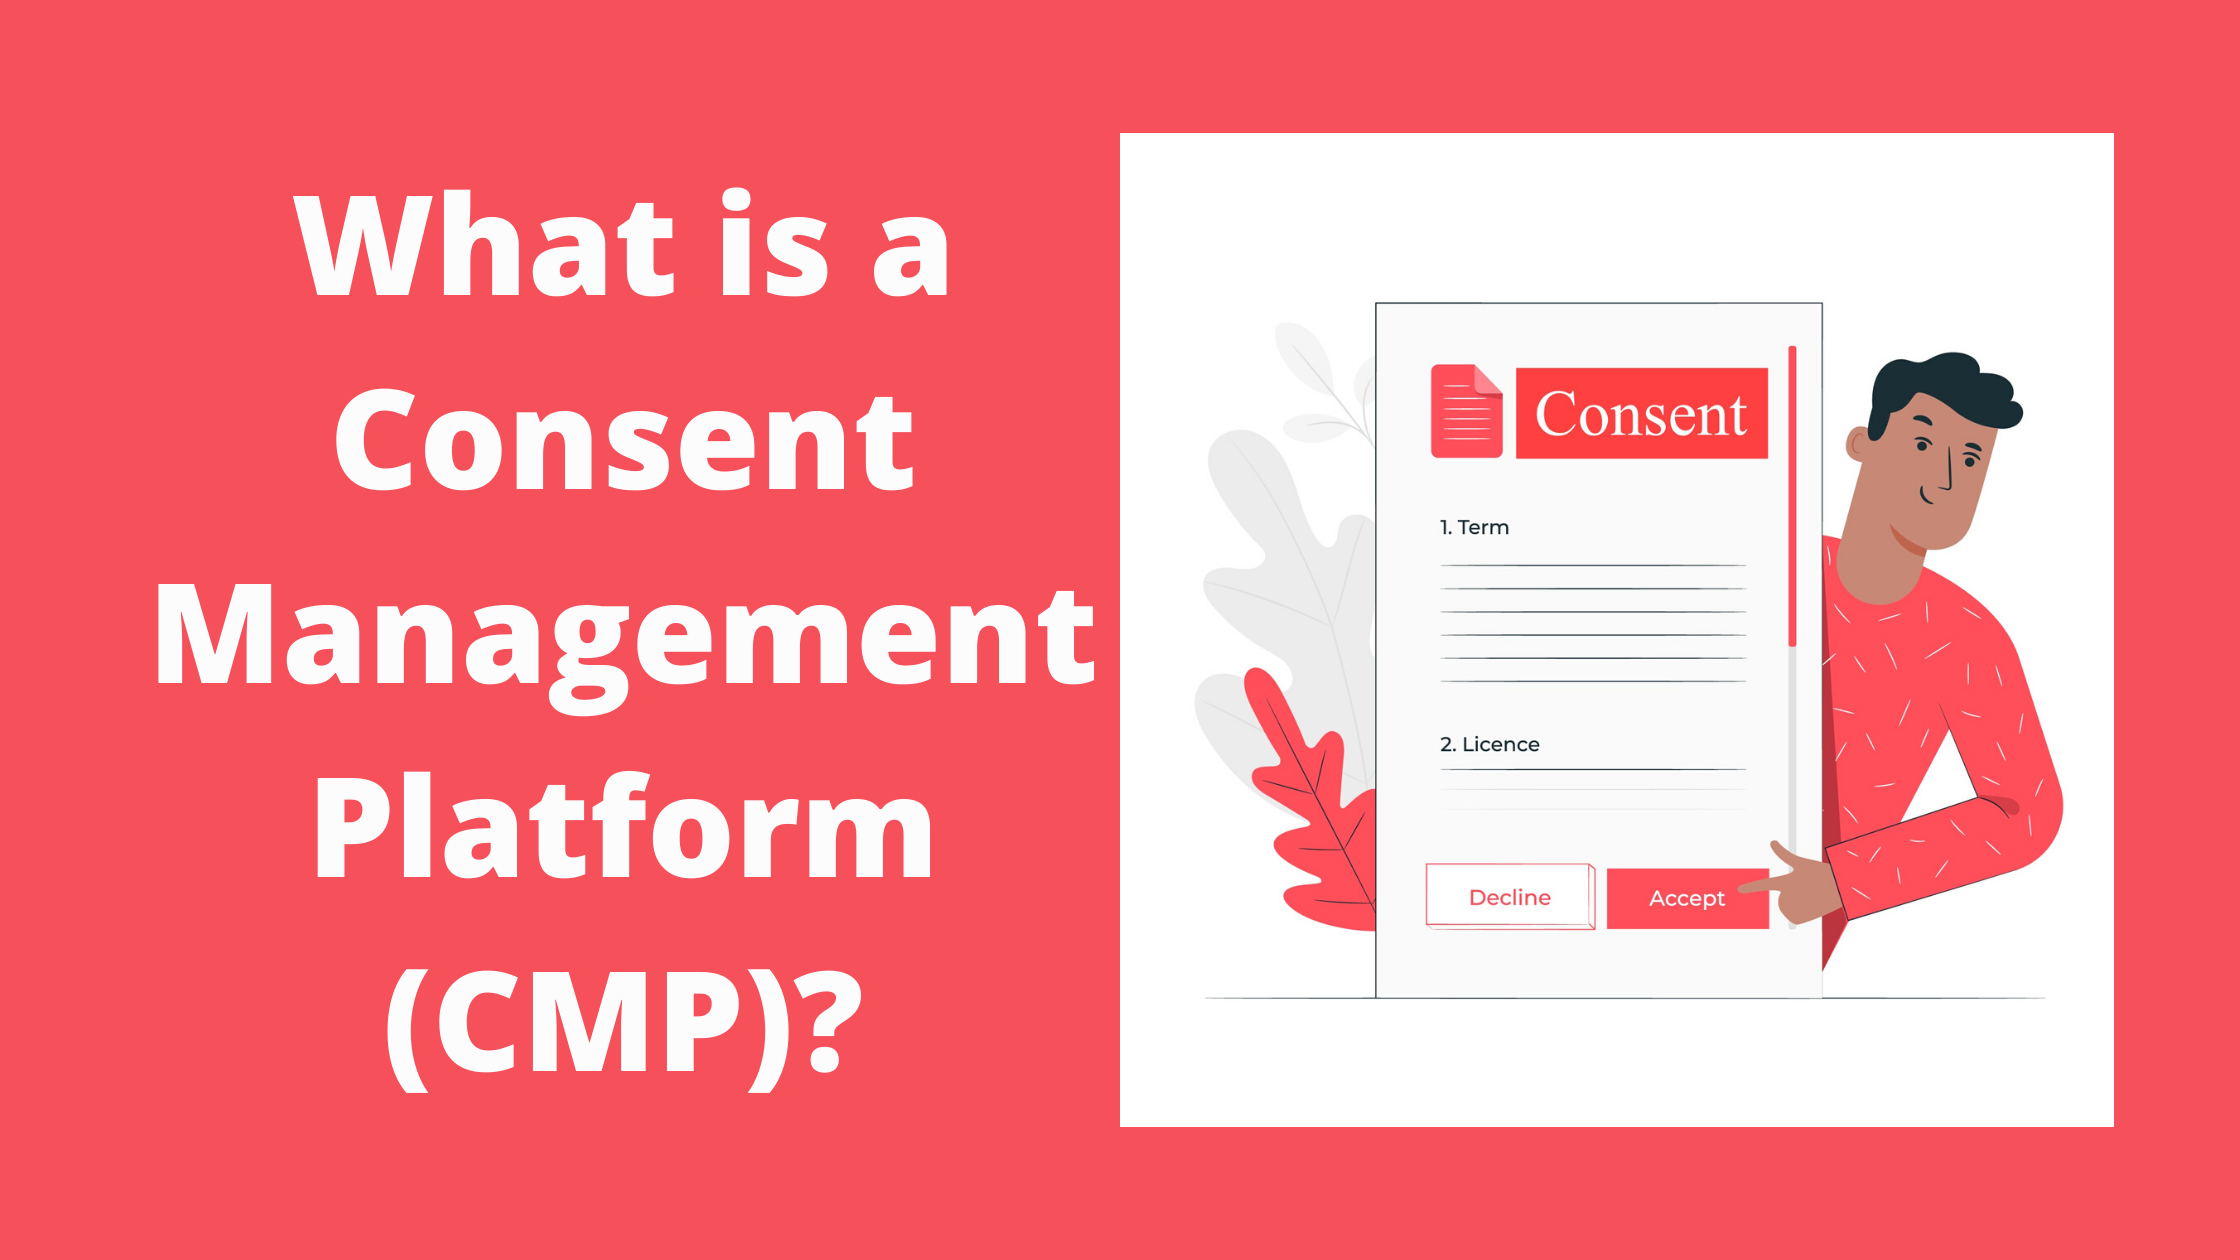 What is a Consent Management Platform (CMP)?